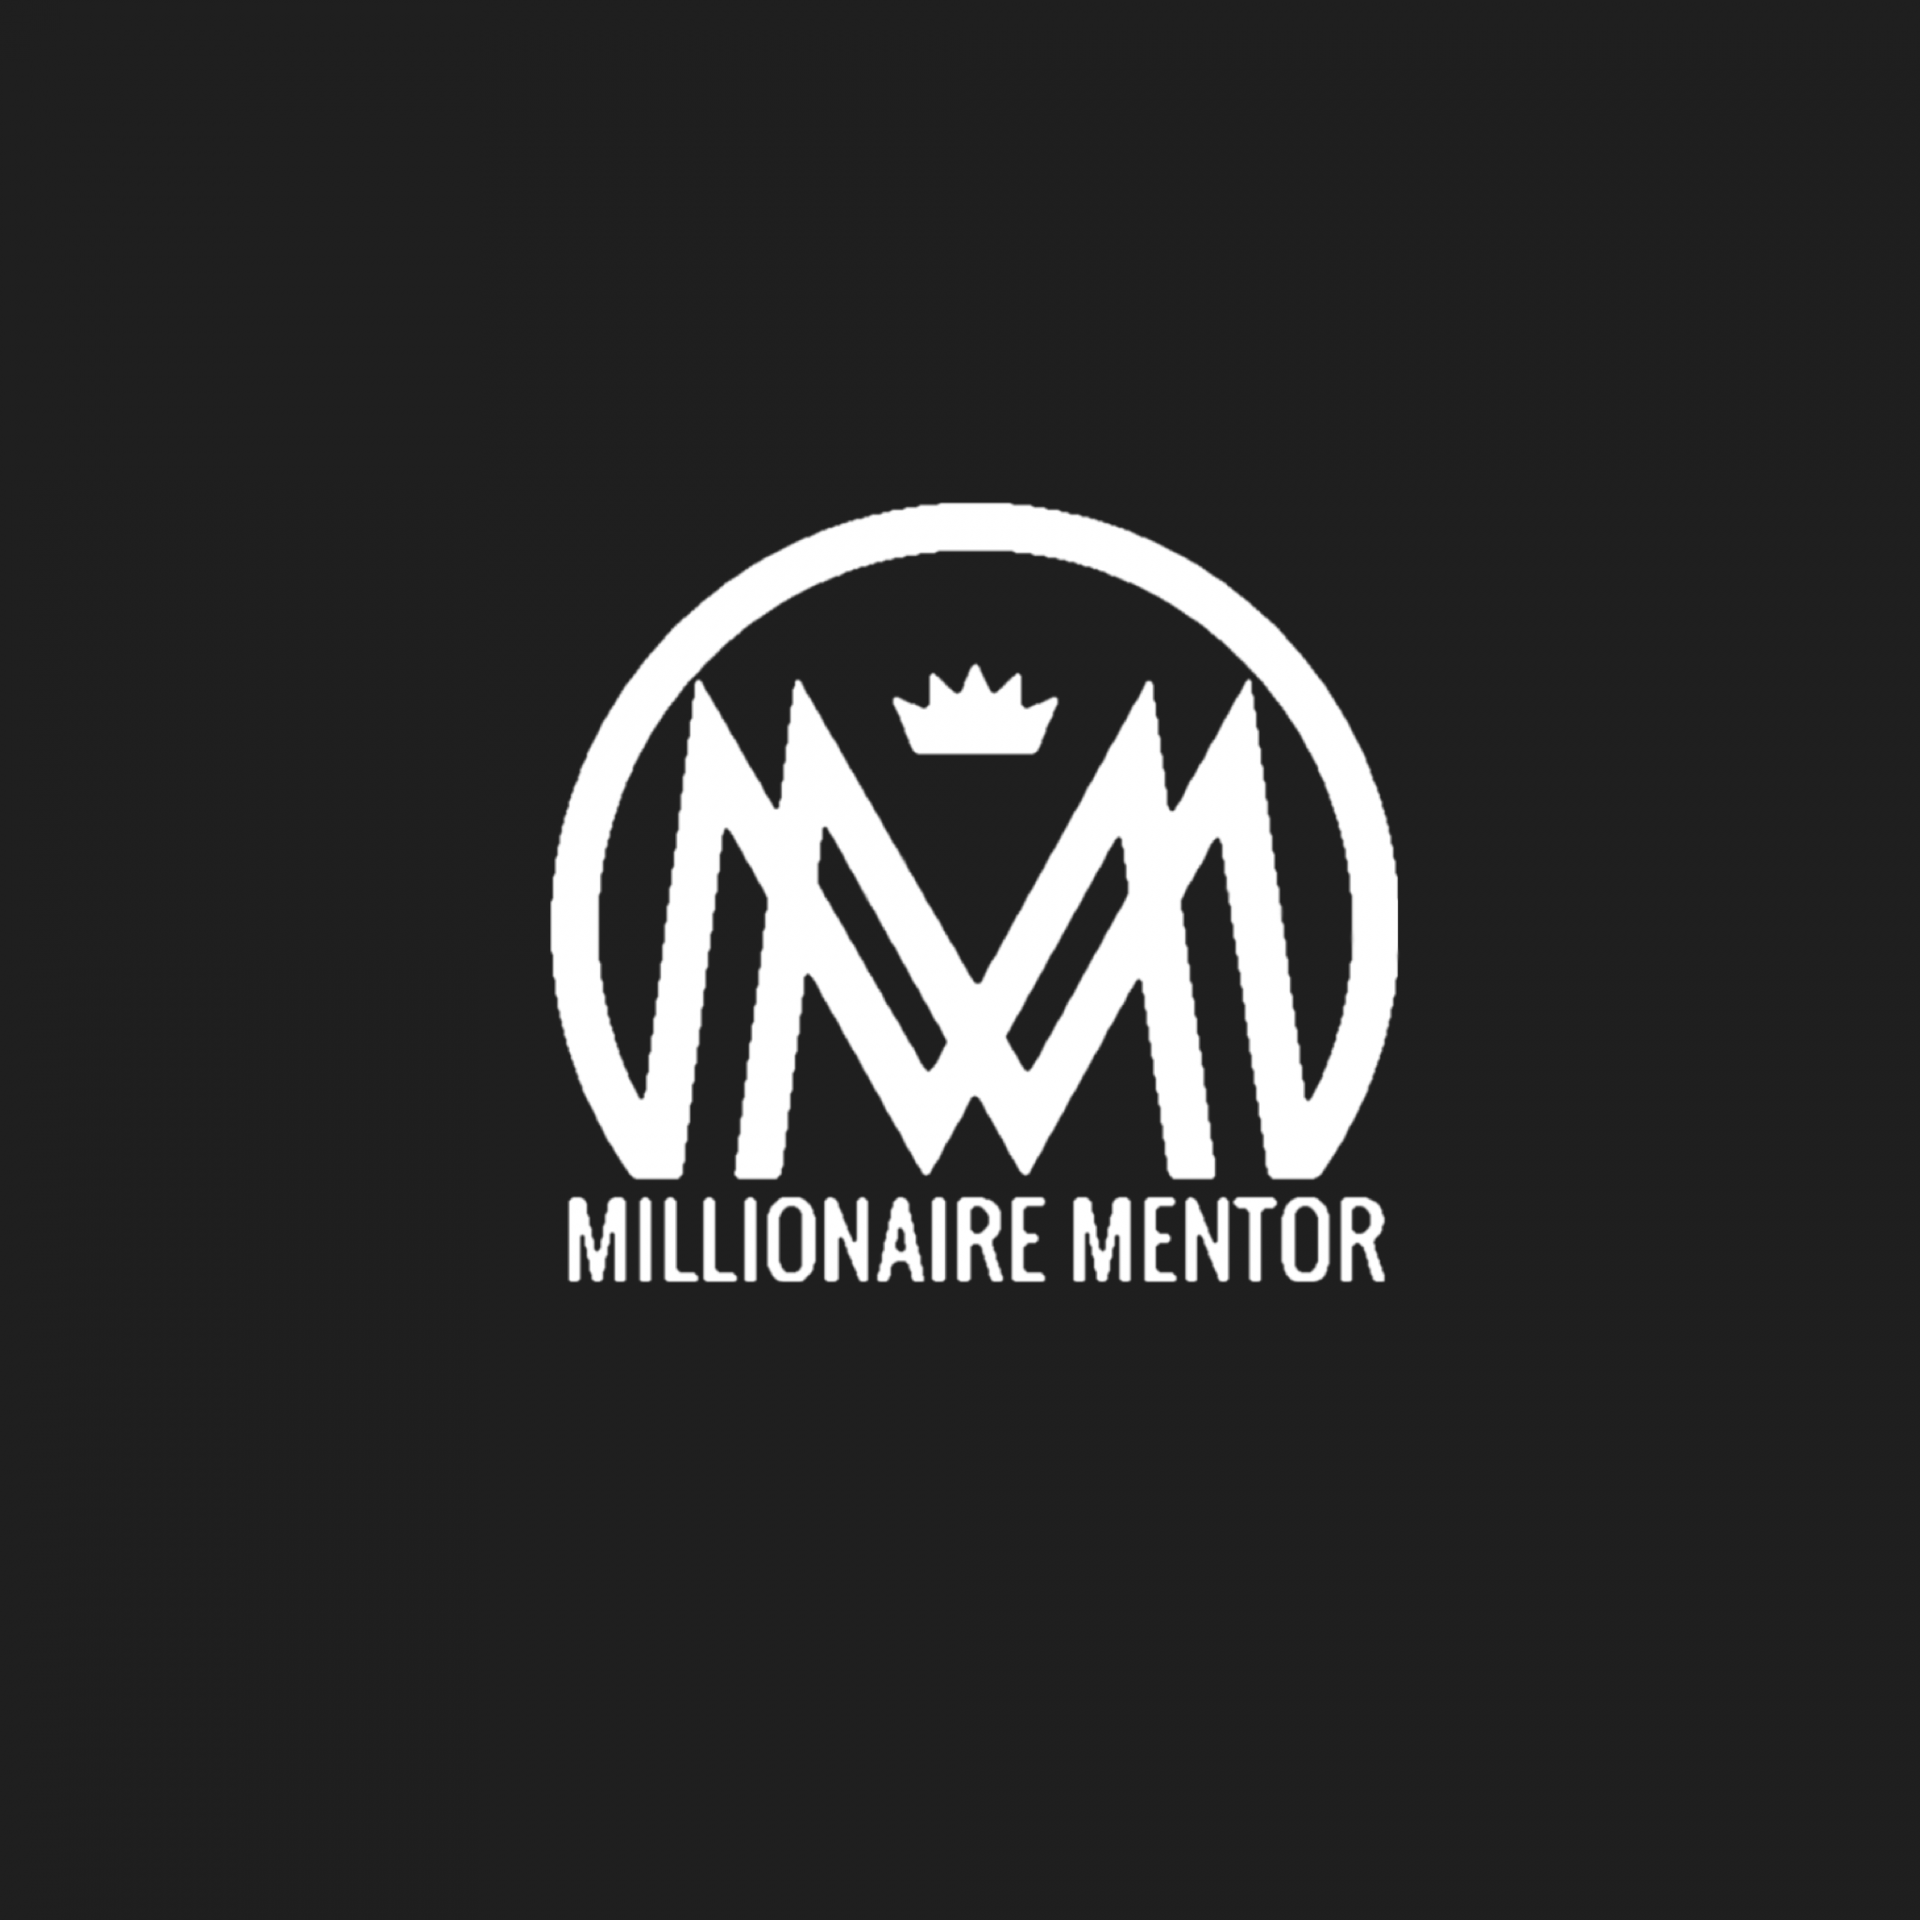 Instagram Influencer, @Millionaire_Mentor Shares Tips In Becoming A Thought Leader Online